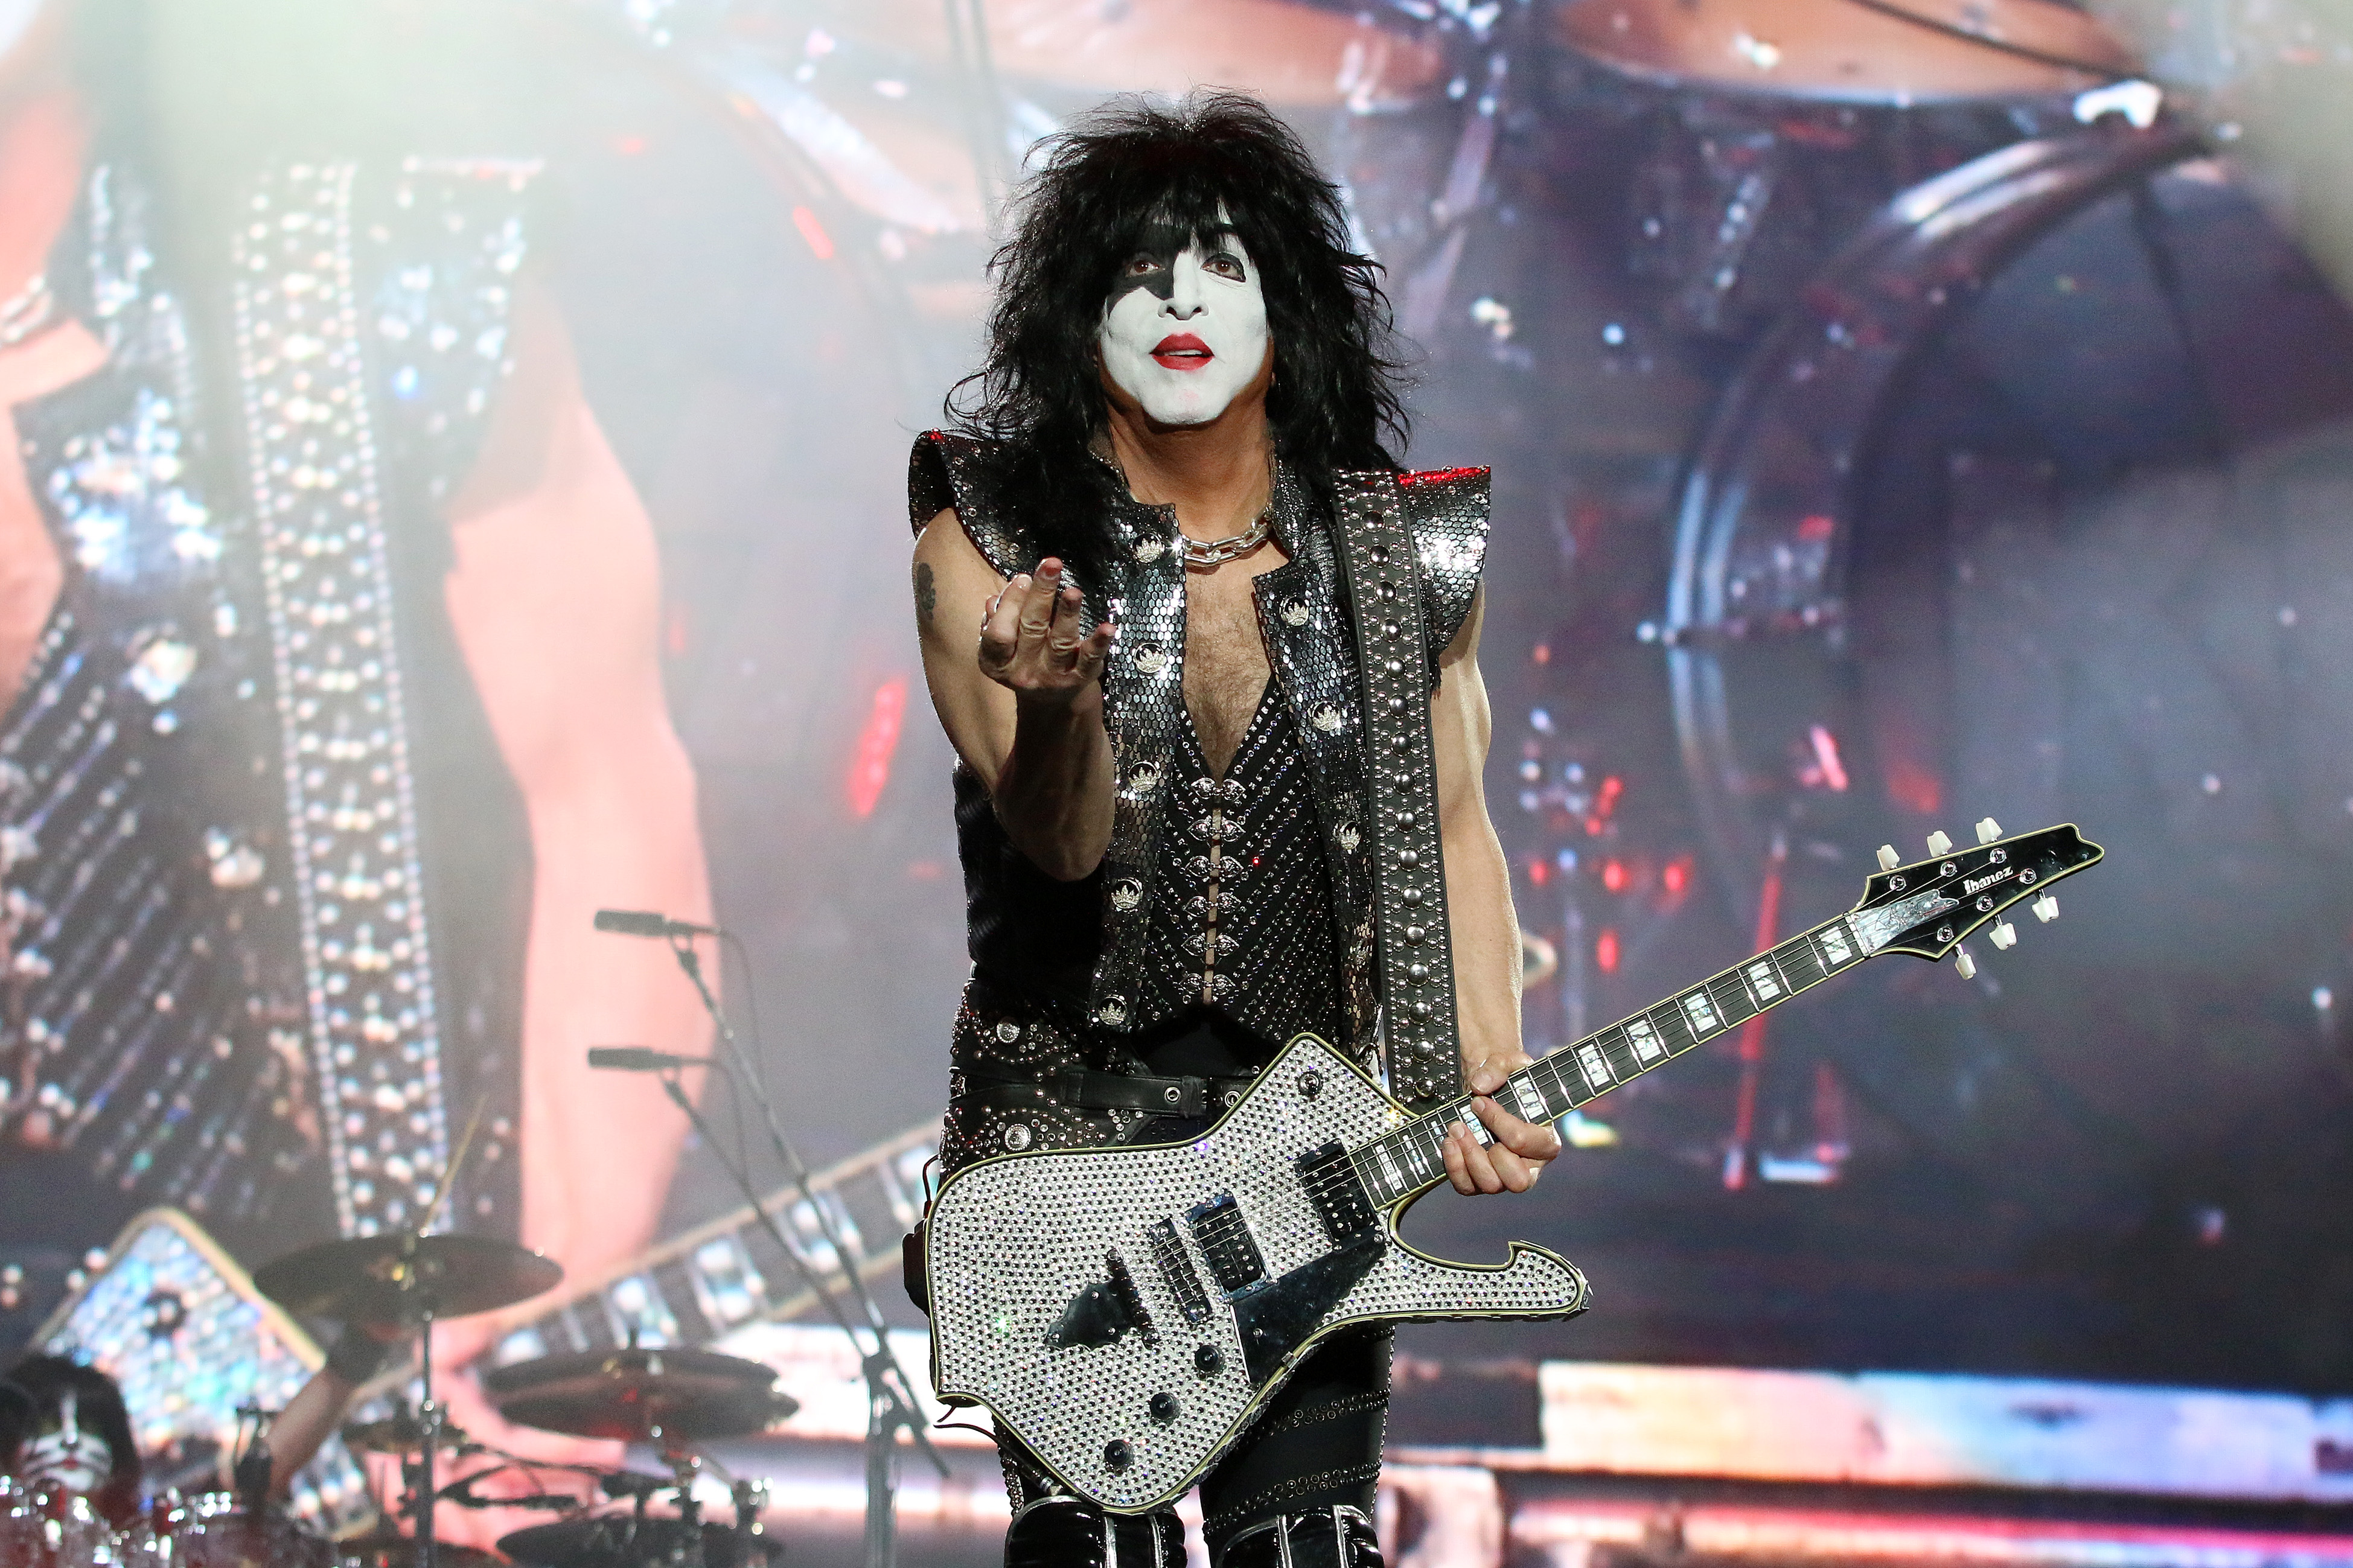 Paul Stanley Pledges to 'KISS 2020 Goodbye' - Paul Stanley Pledges to 'KISS  2020 Goodbye' With Explosive Sendoff SPIN